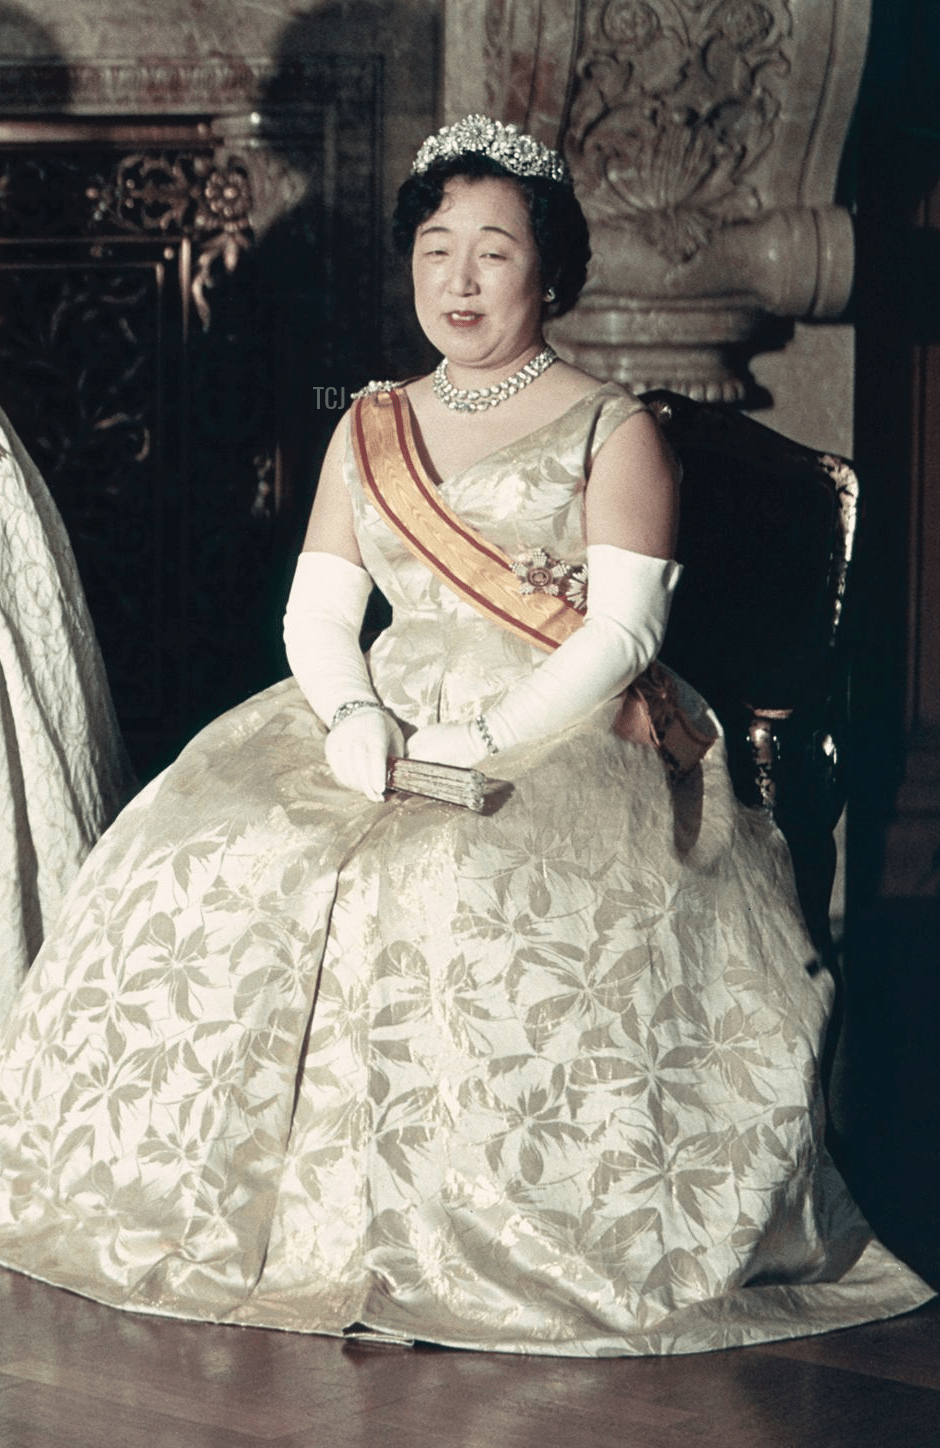 Empress Nagako during the imperial wedding celebrations in Japan, 1959